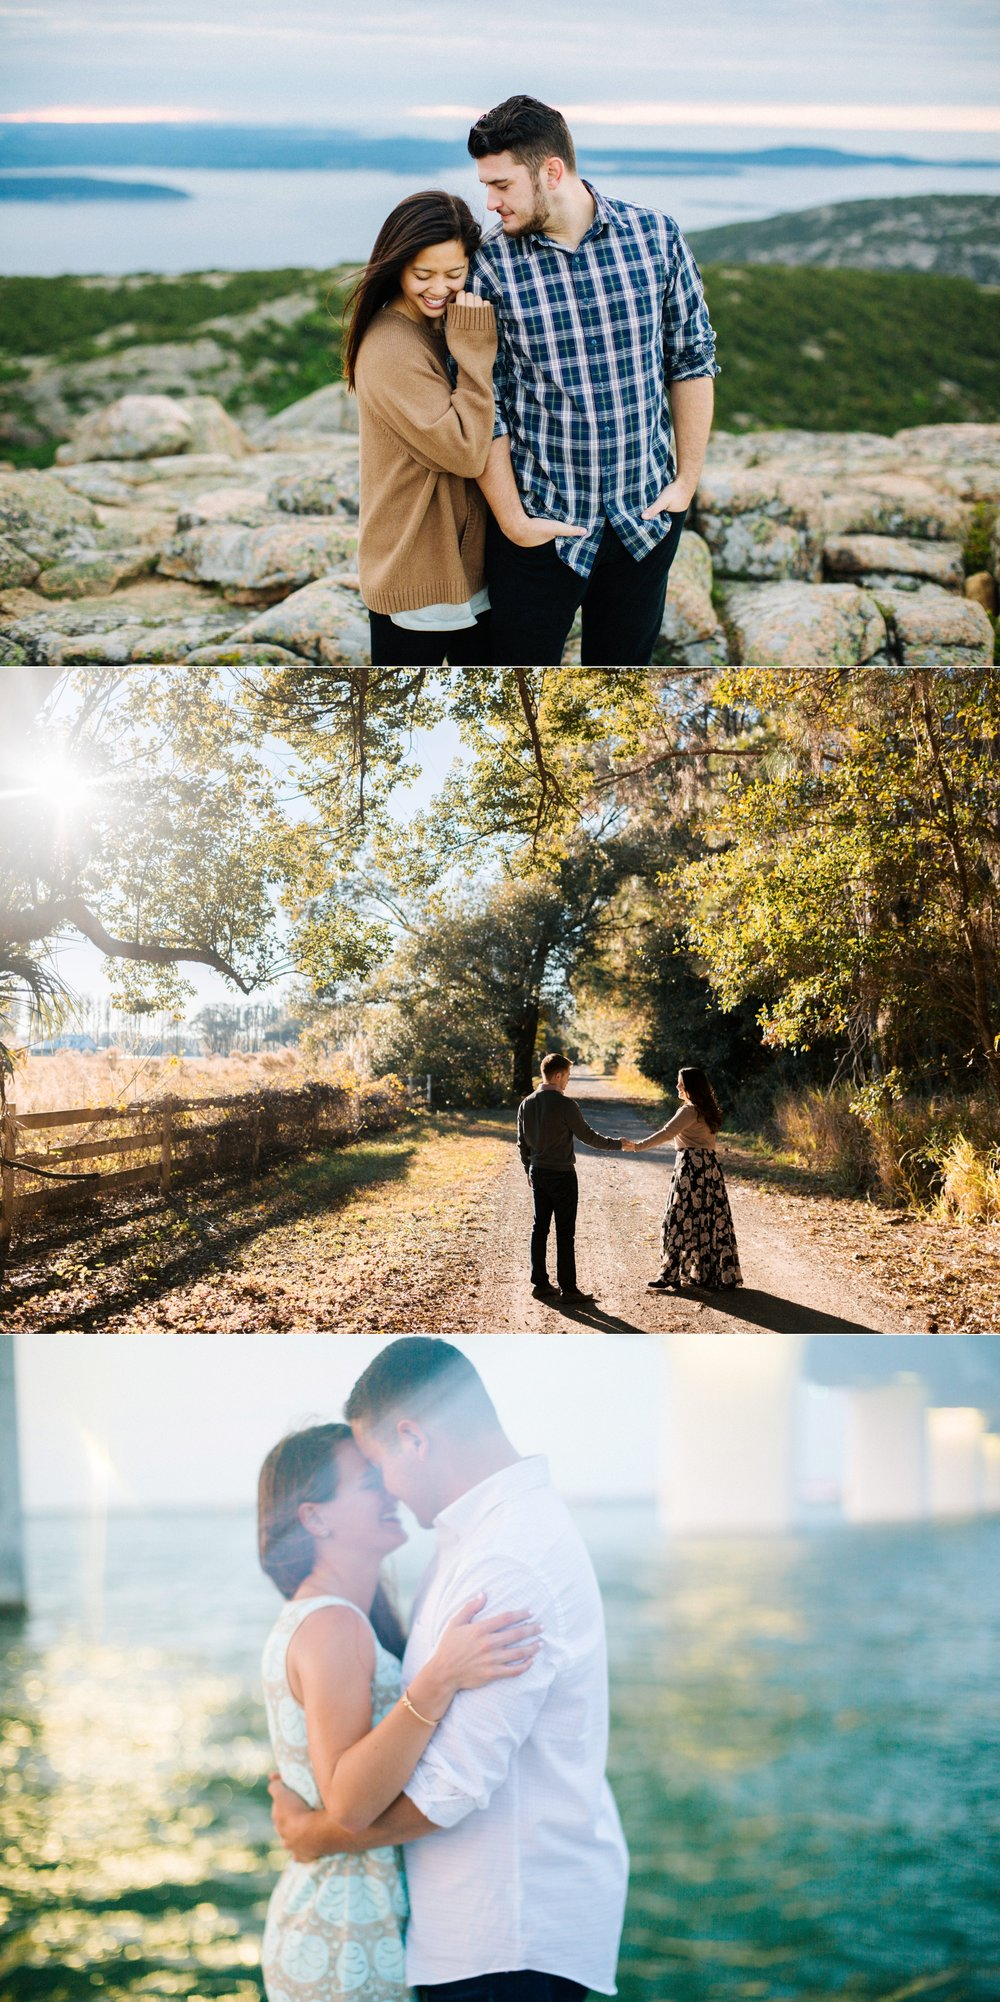 Jake & Katie Photography Best of Couples 2016-037.jpg